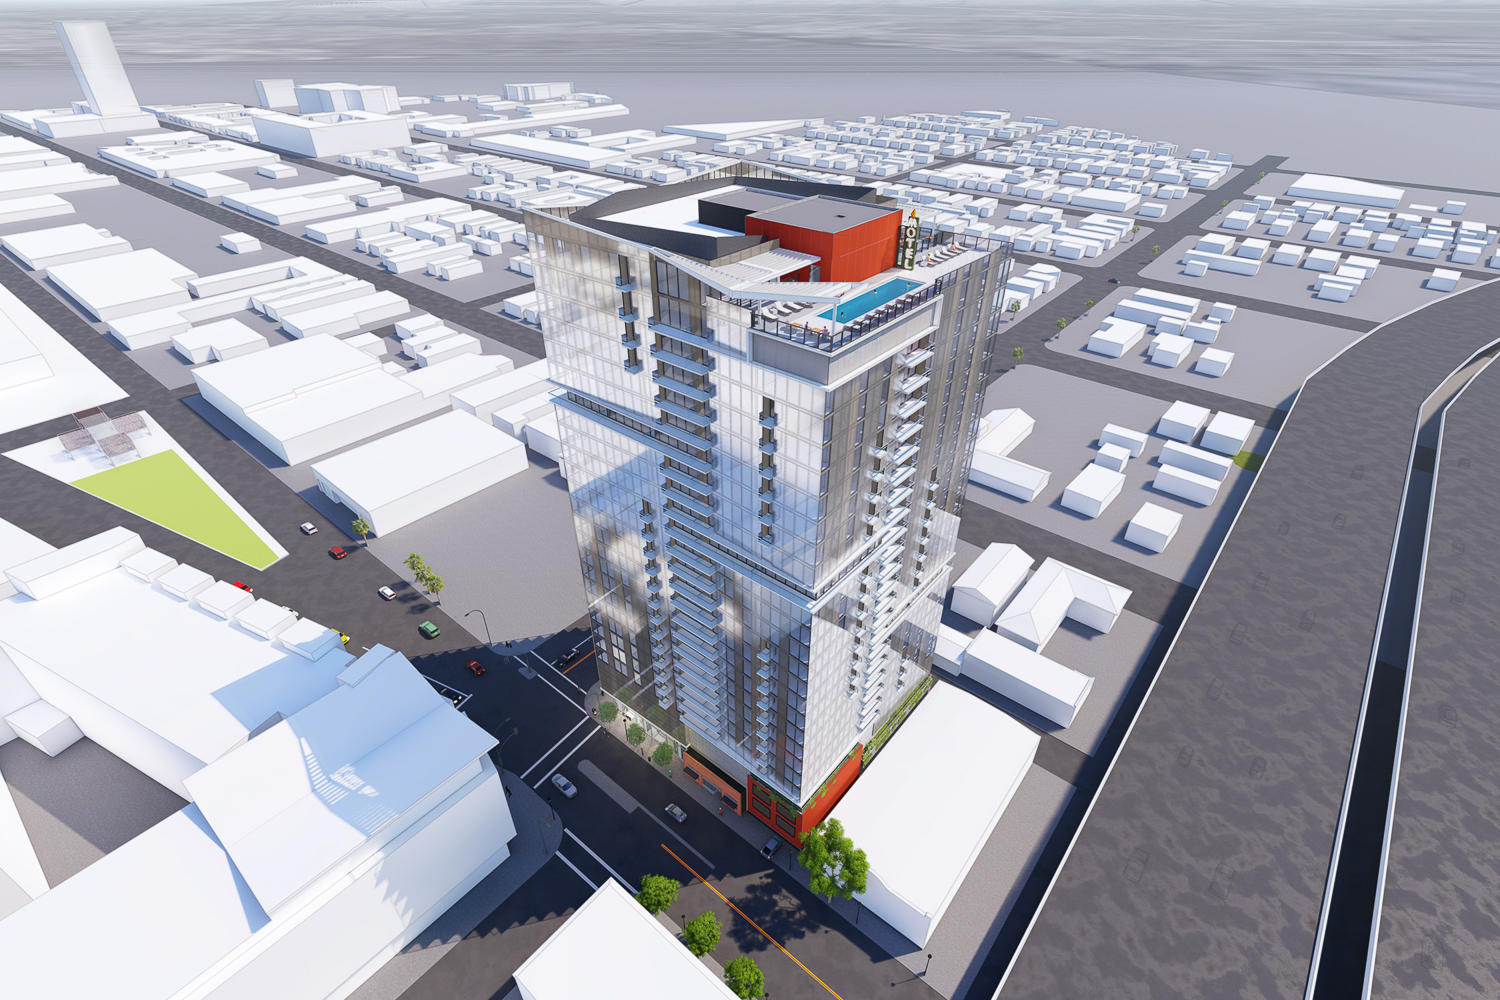 600 South 1st Street Garden Gate tower aerial view, rendering by C2K Architecture